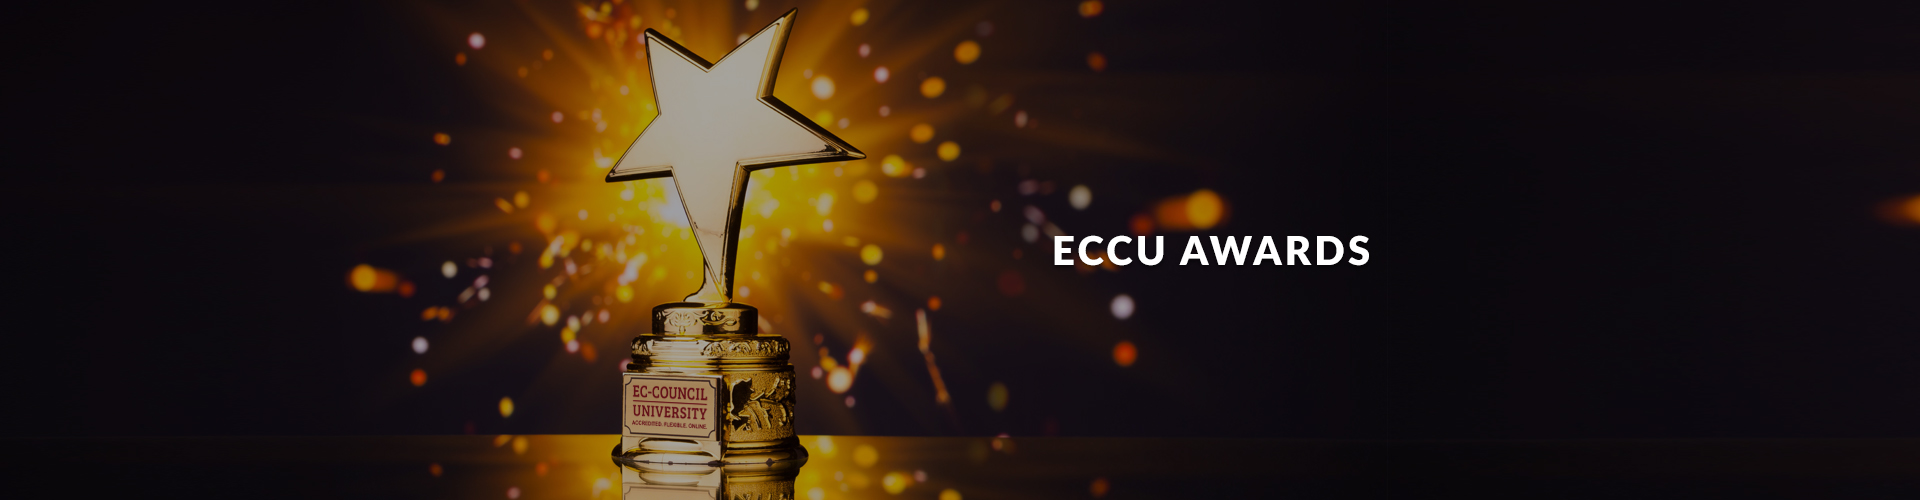 ECCU Awards